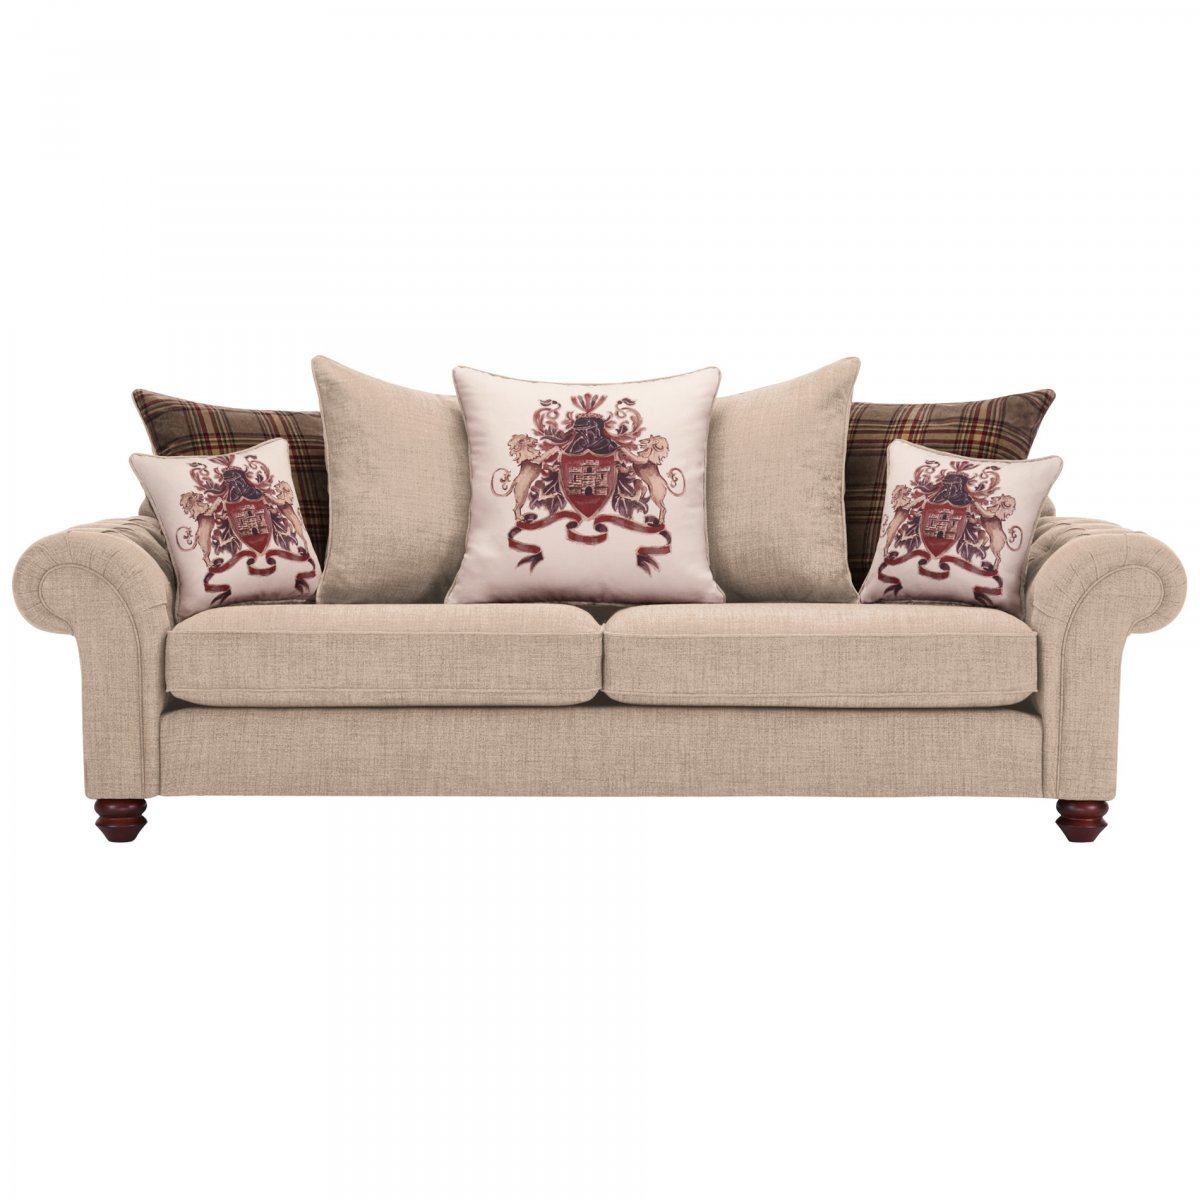 brown and beige sofa large sectional sofas uk sandringham 4 seater pillow back in 43 scatters